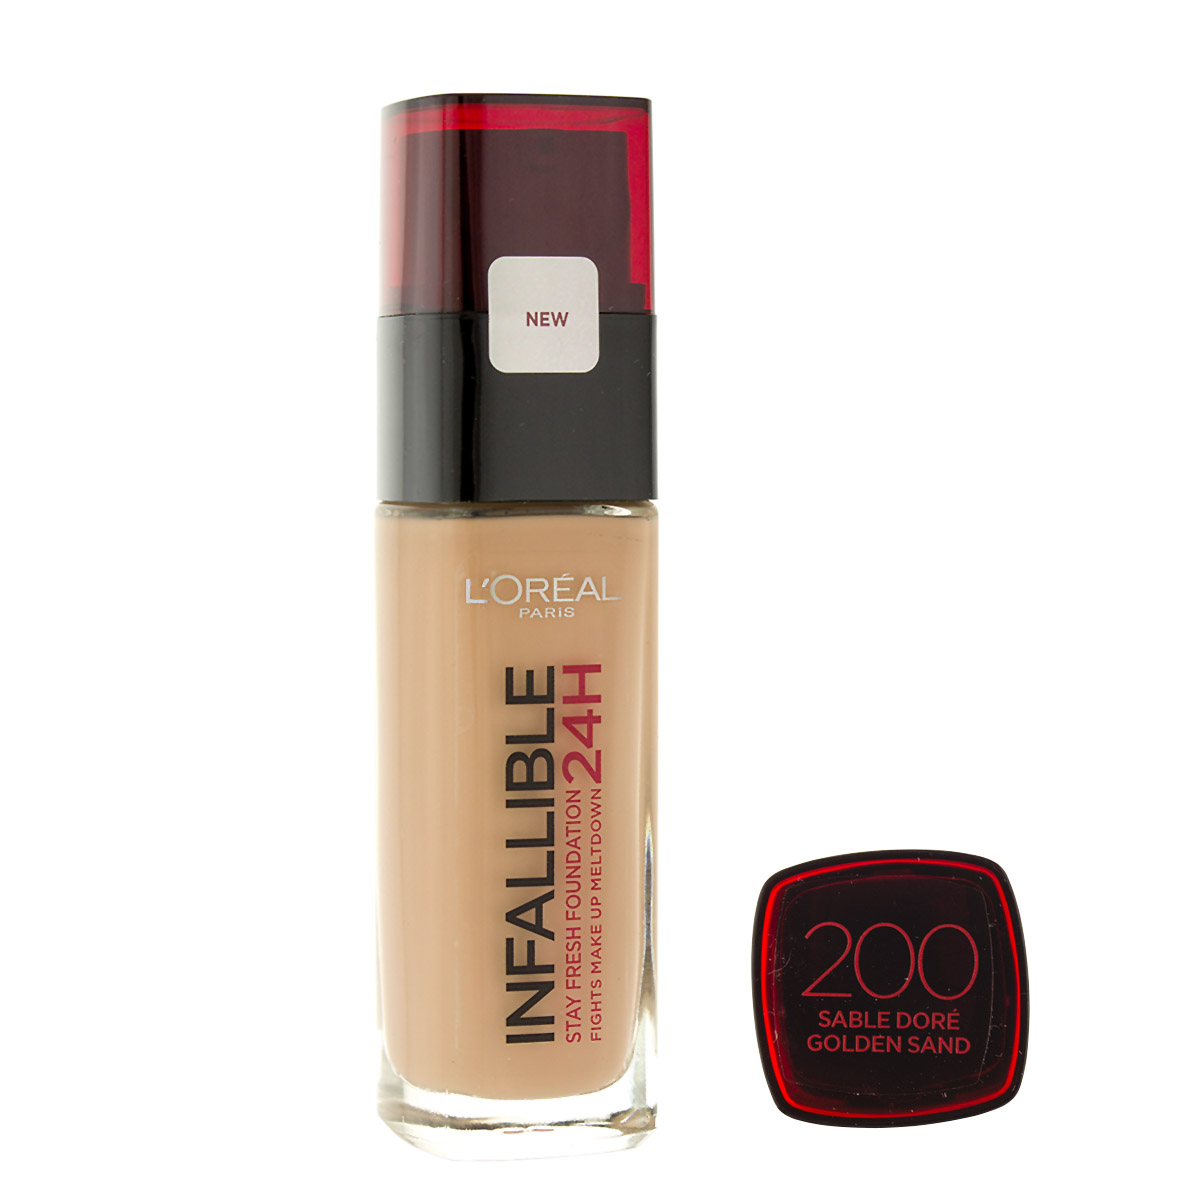 L´Oreal Paris Infallible 24H make-up (200 Golden Sand) 30 ml